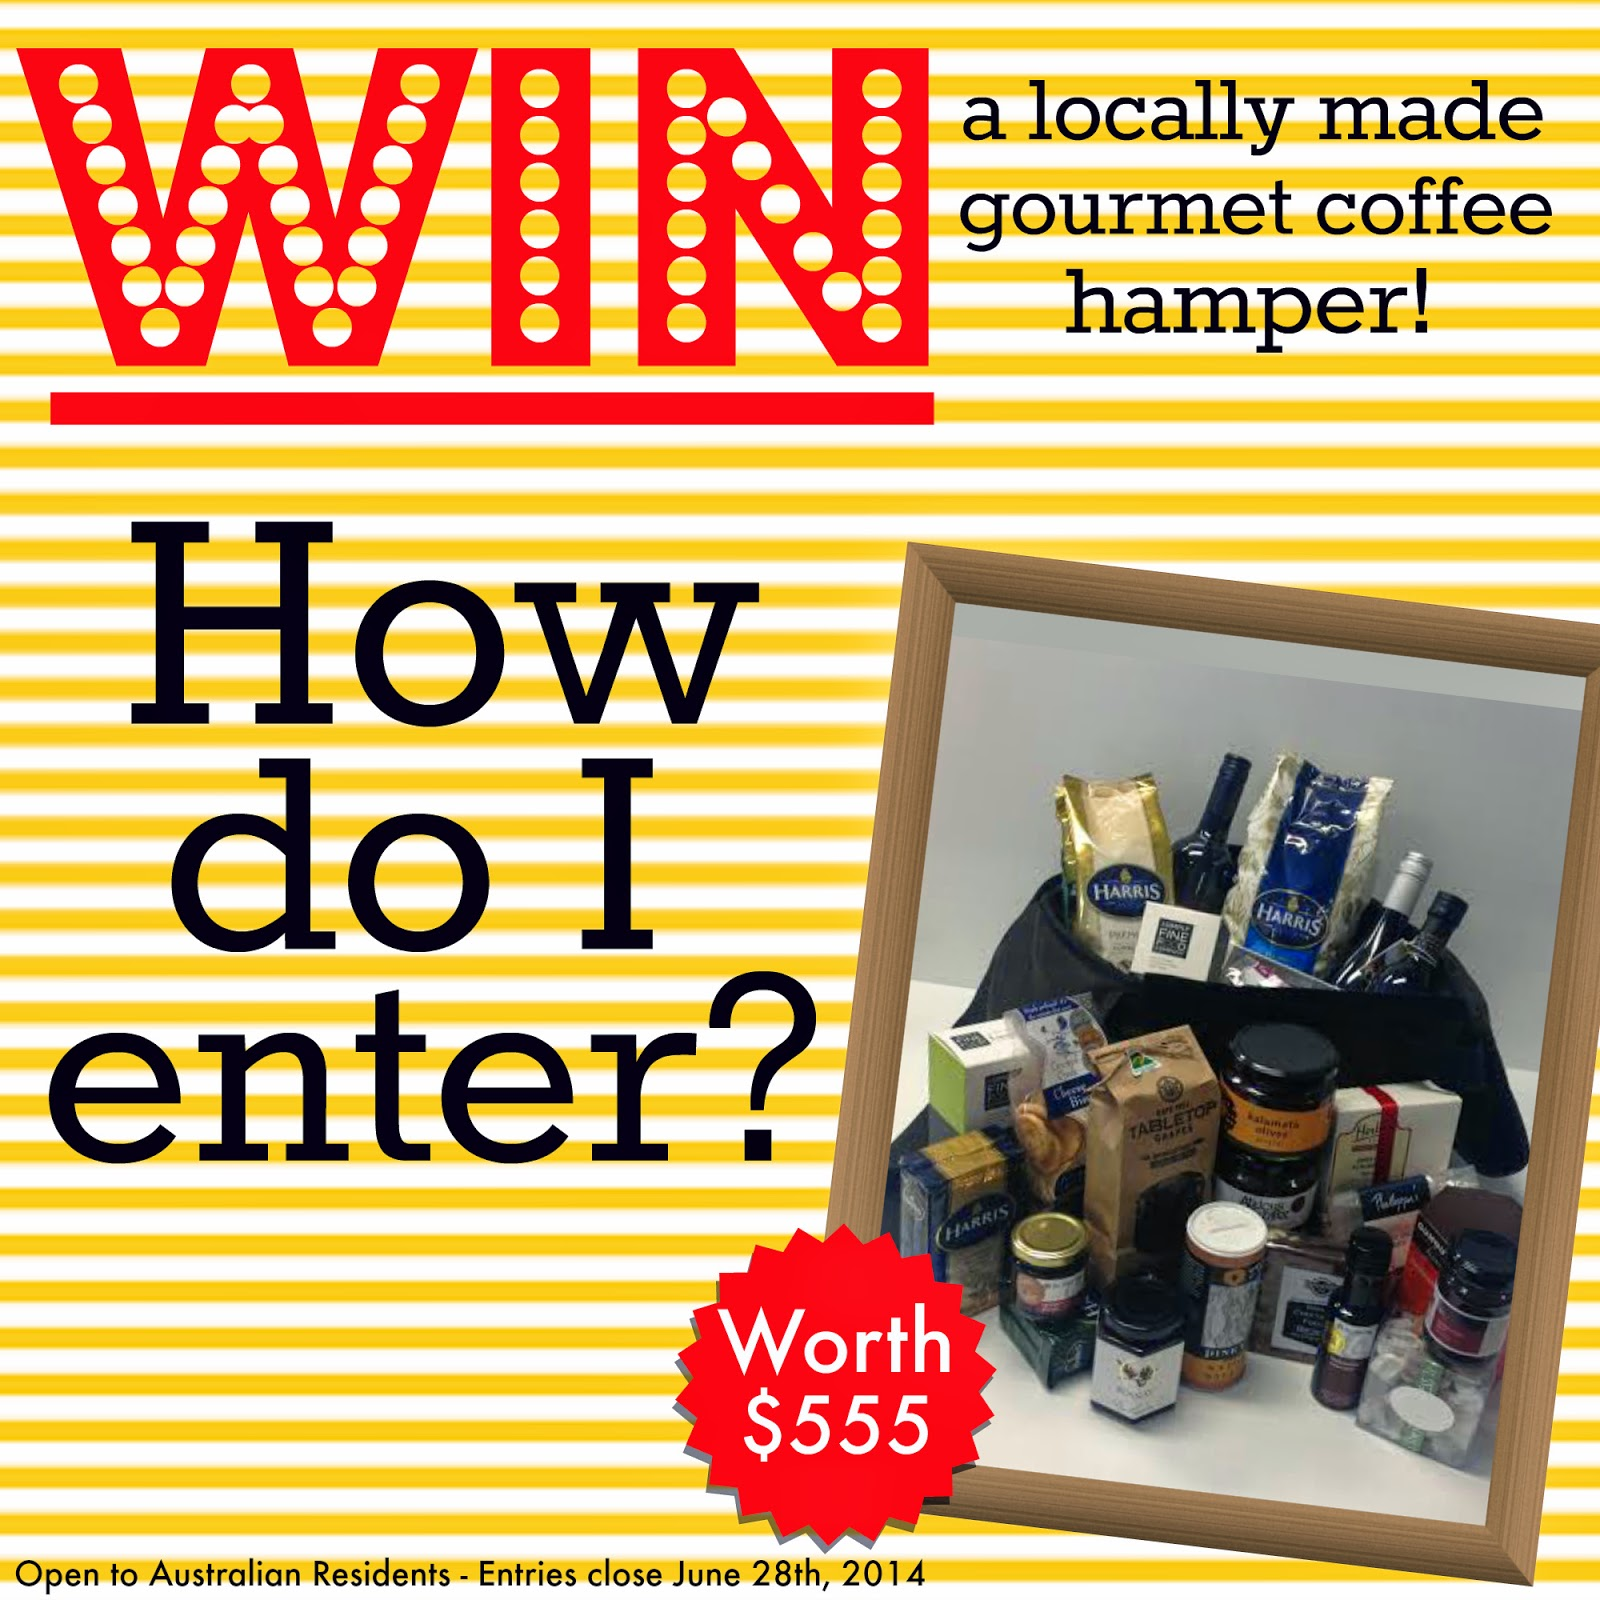 Win a Locally Made Gourmet Hamper from Harris Coffee